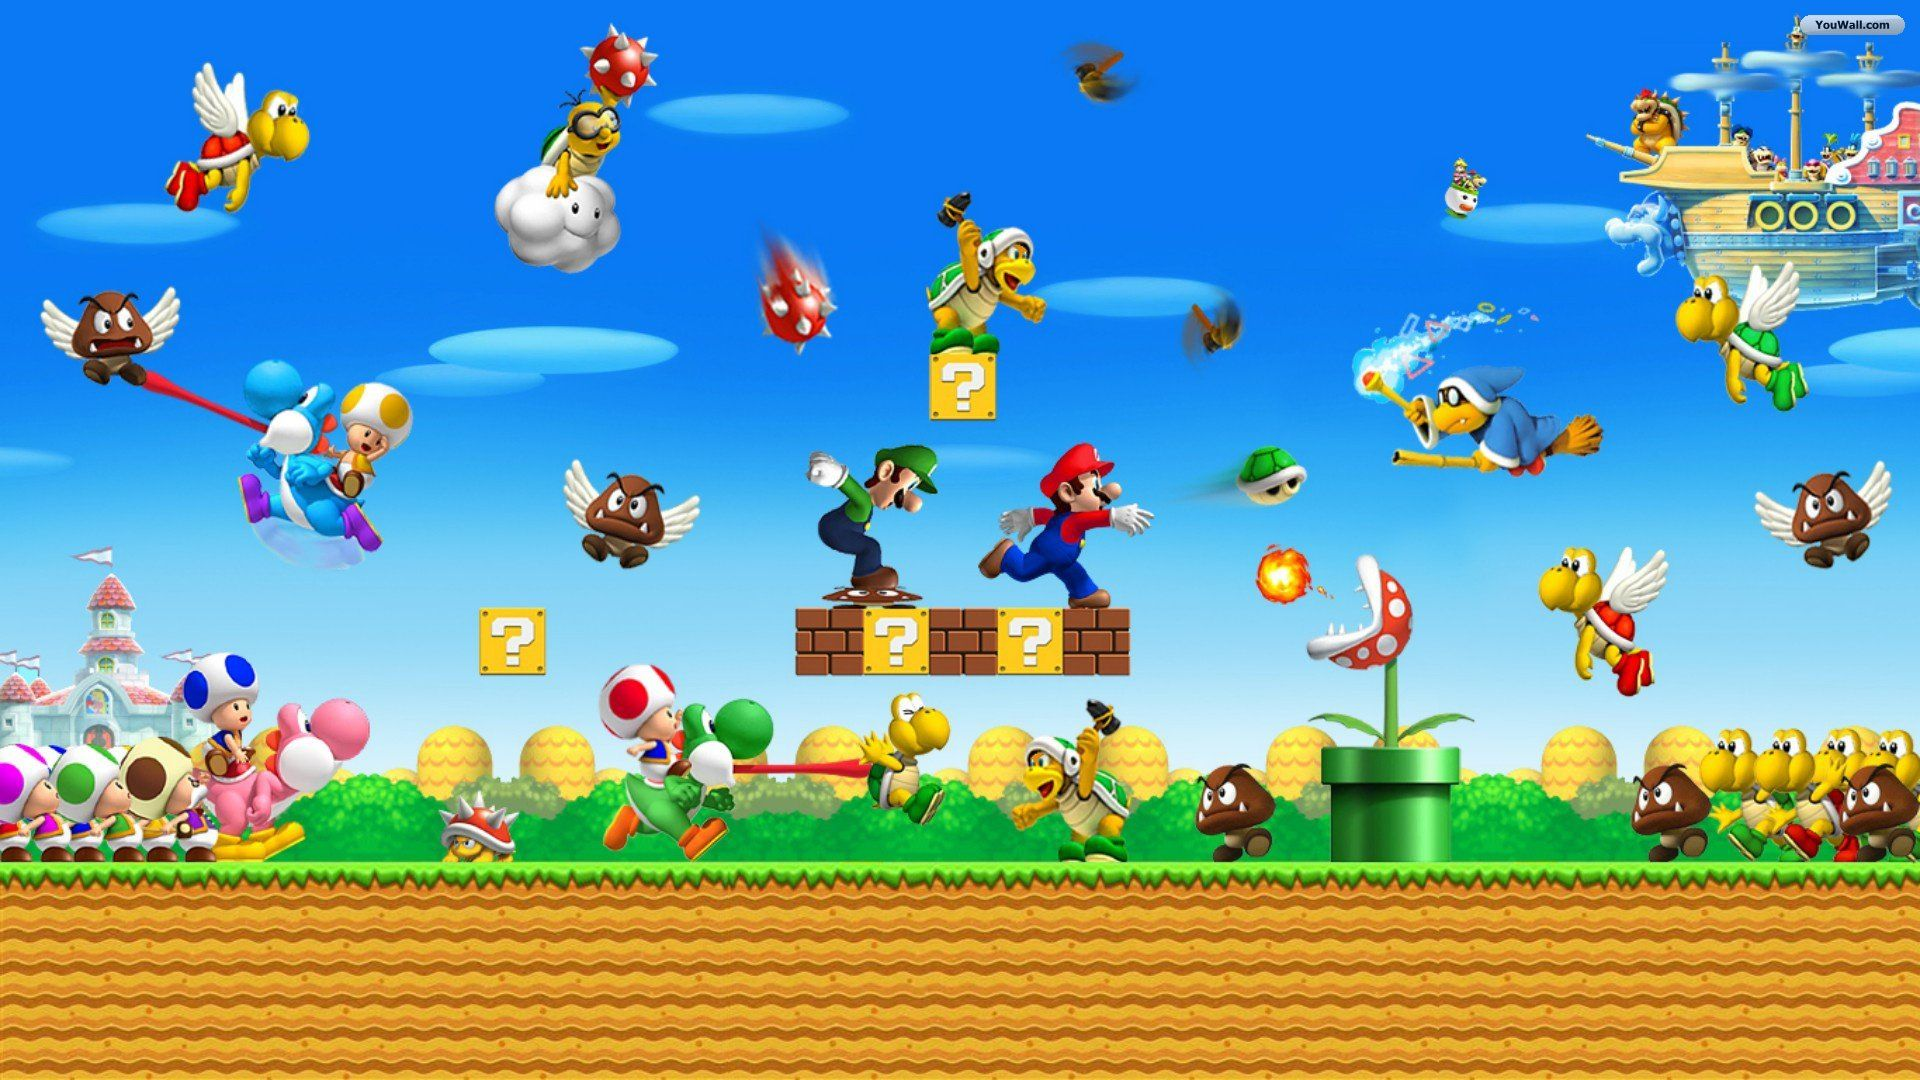 17 Best images about Super Mario on Pinterest   Super mario bros  Super  mario birthday and Nu est jr. 17 Best images about Super Mario on Pinterest   Super mario bros